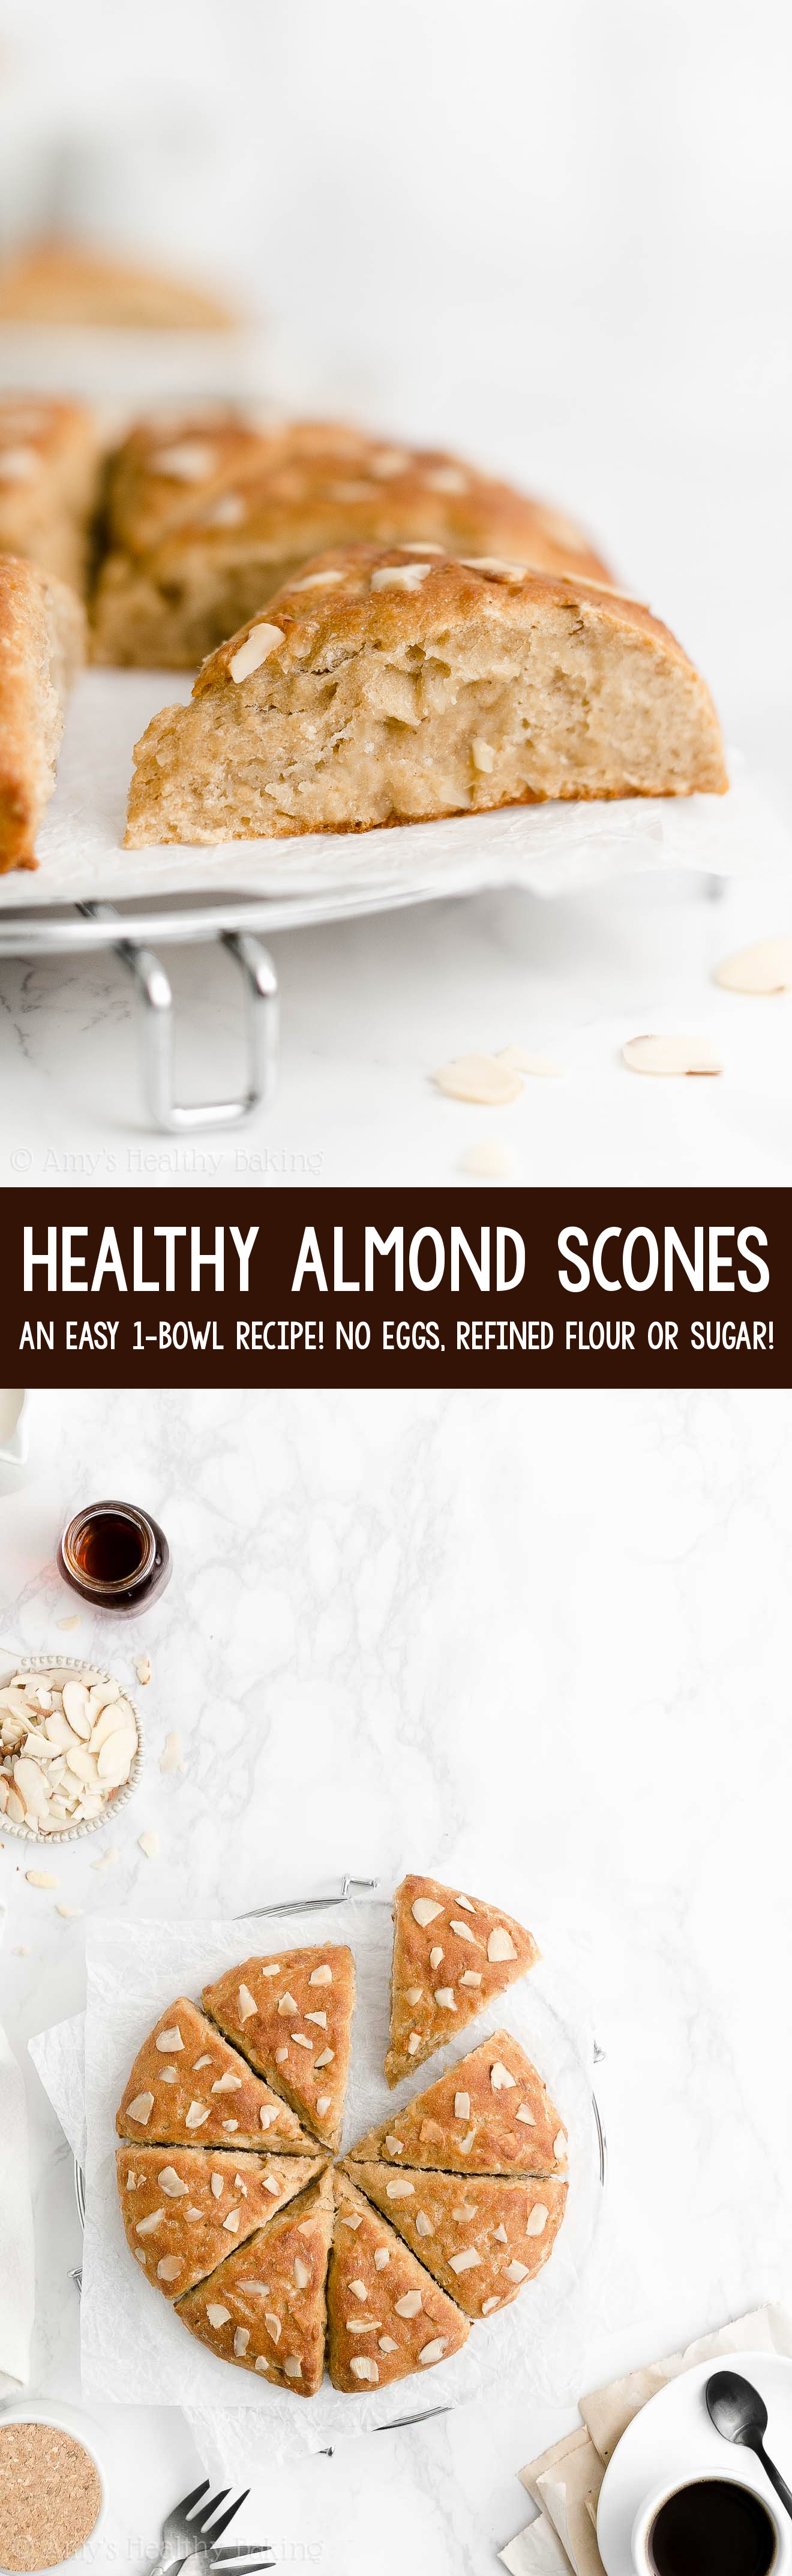 Best Easy Healthy Homemade Clean Eating Low Calorie Greek Yogurt Almond Scones